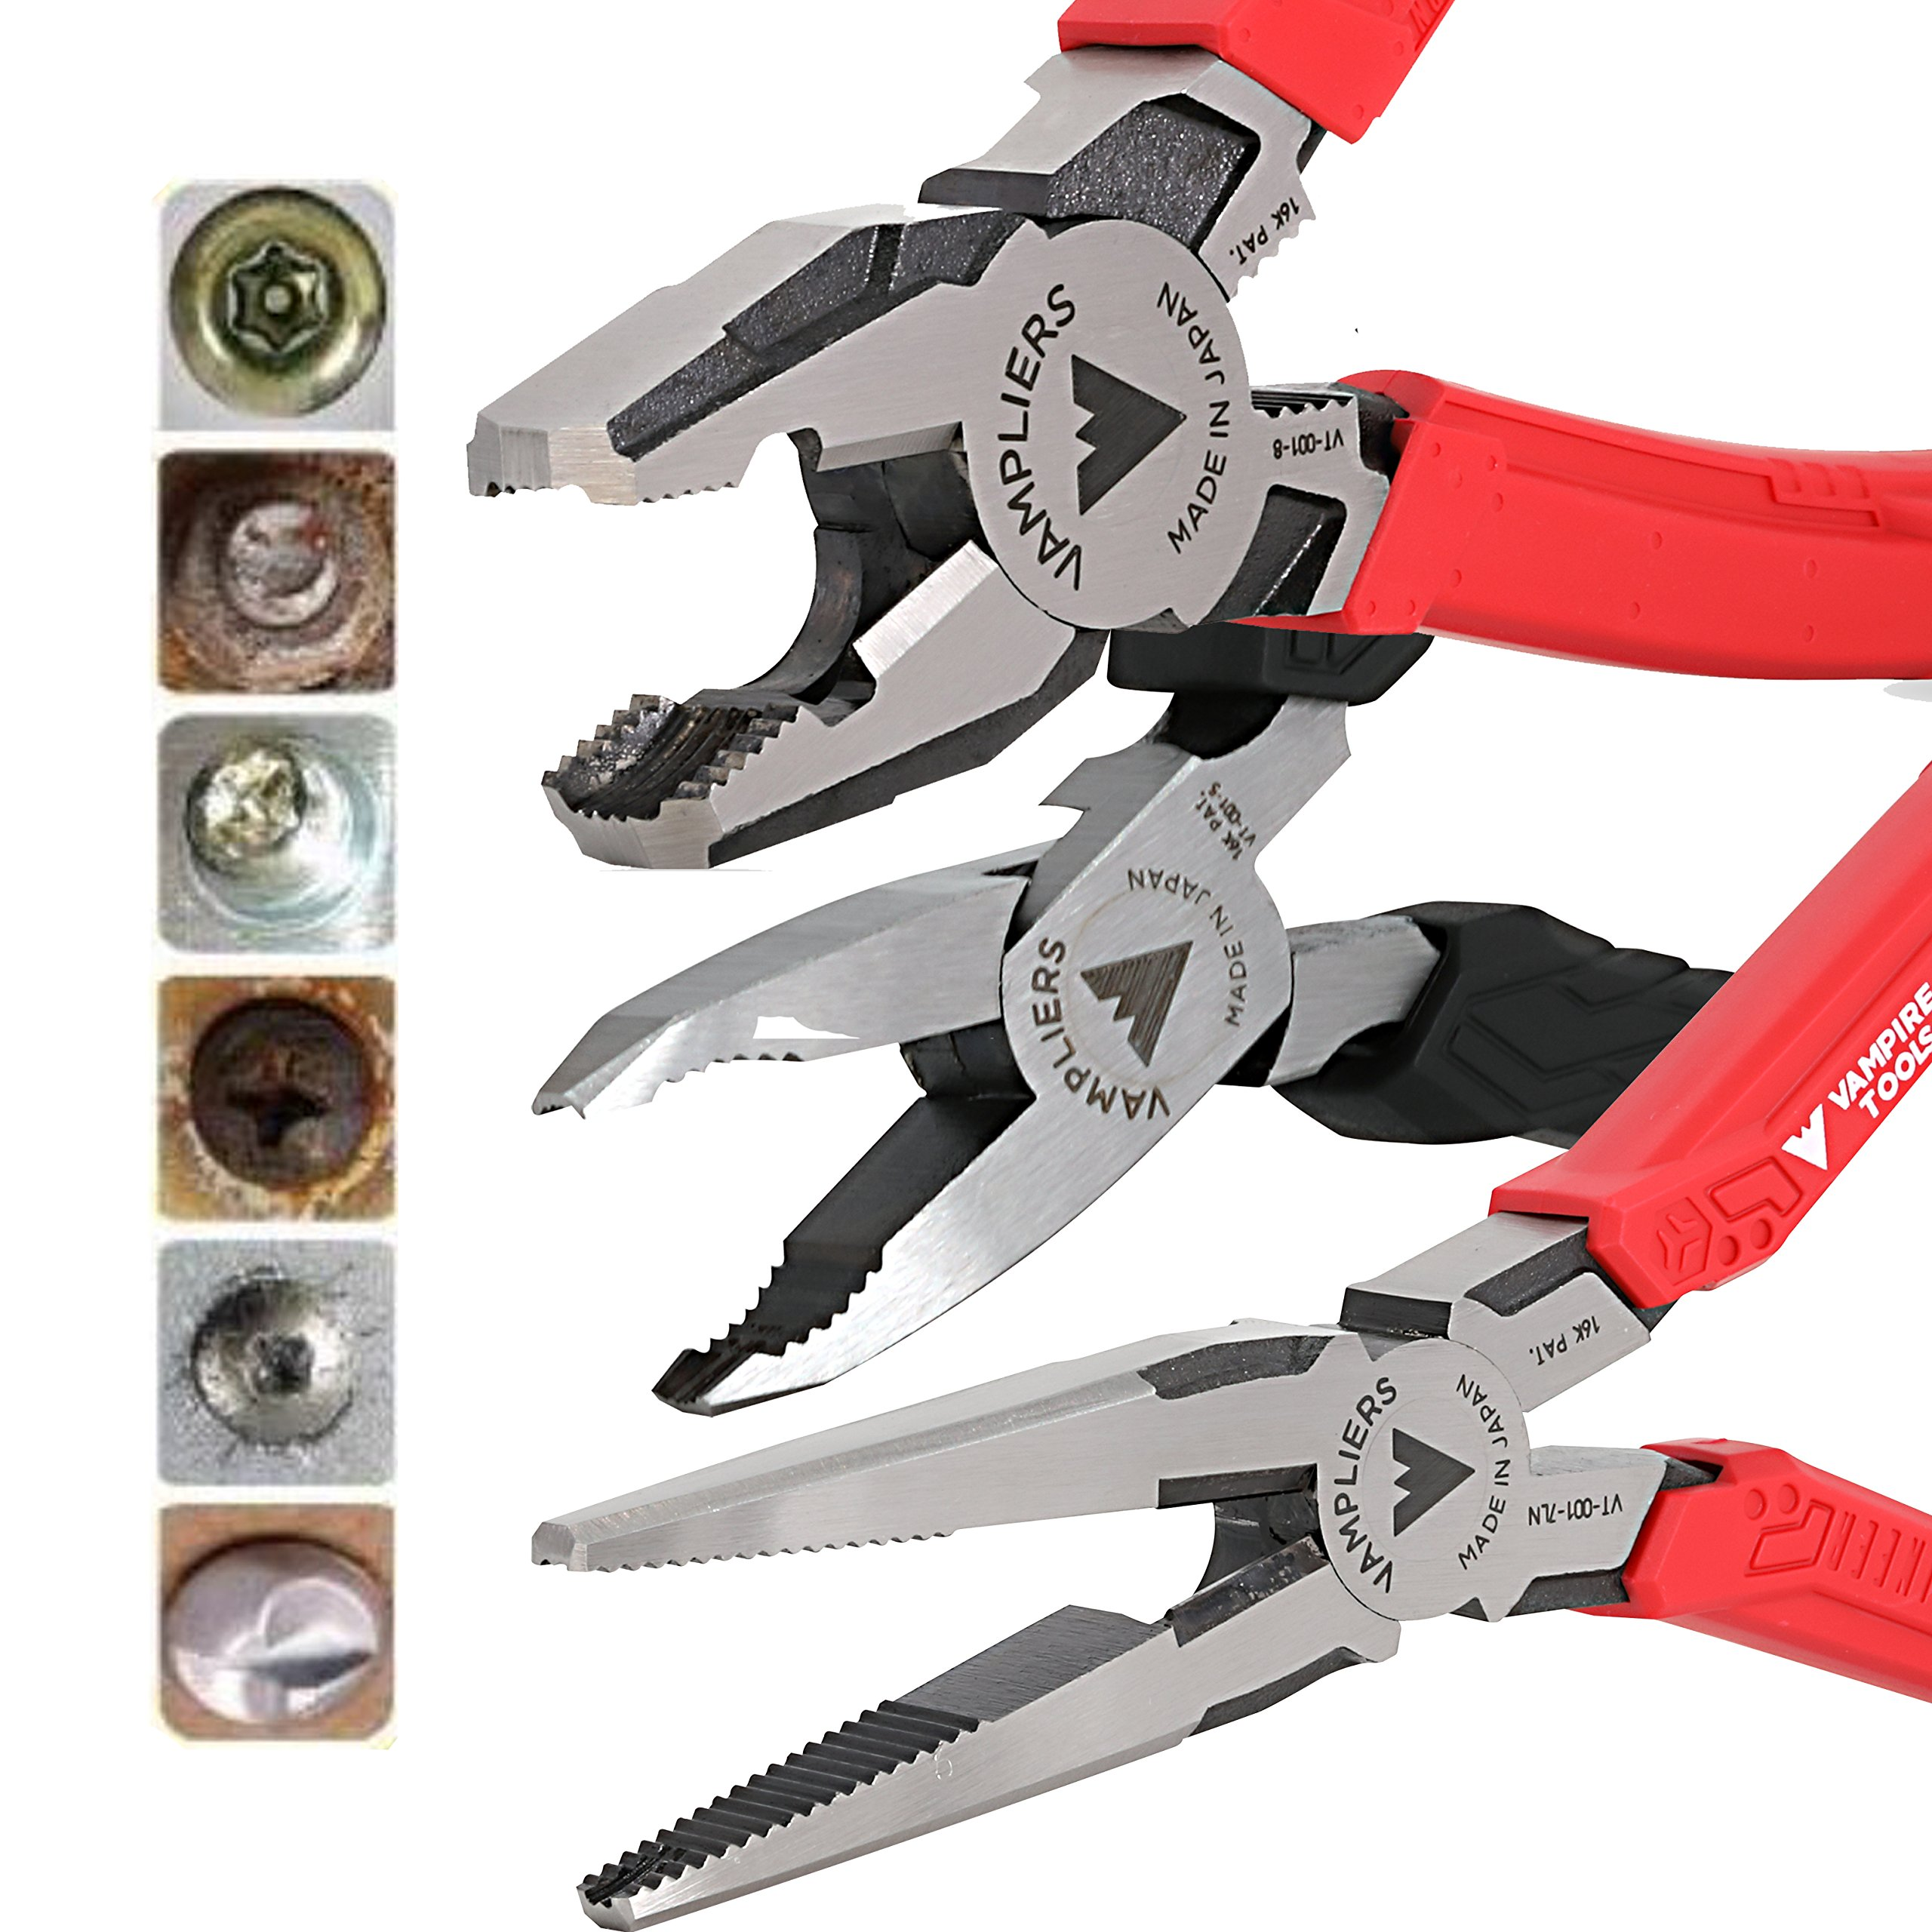 VamPLIERS 3-PC Set S3EP Specialty Screw Extraction Pliers. Extract Stripped Stuck Security, Corroded, or Rusted Screws + Tool Pouch by Vampire Professional Tools International